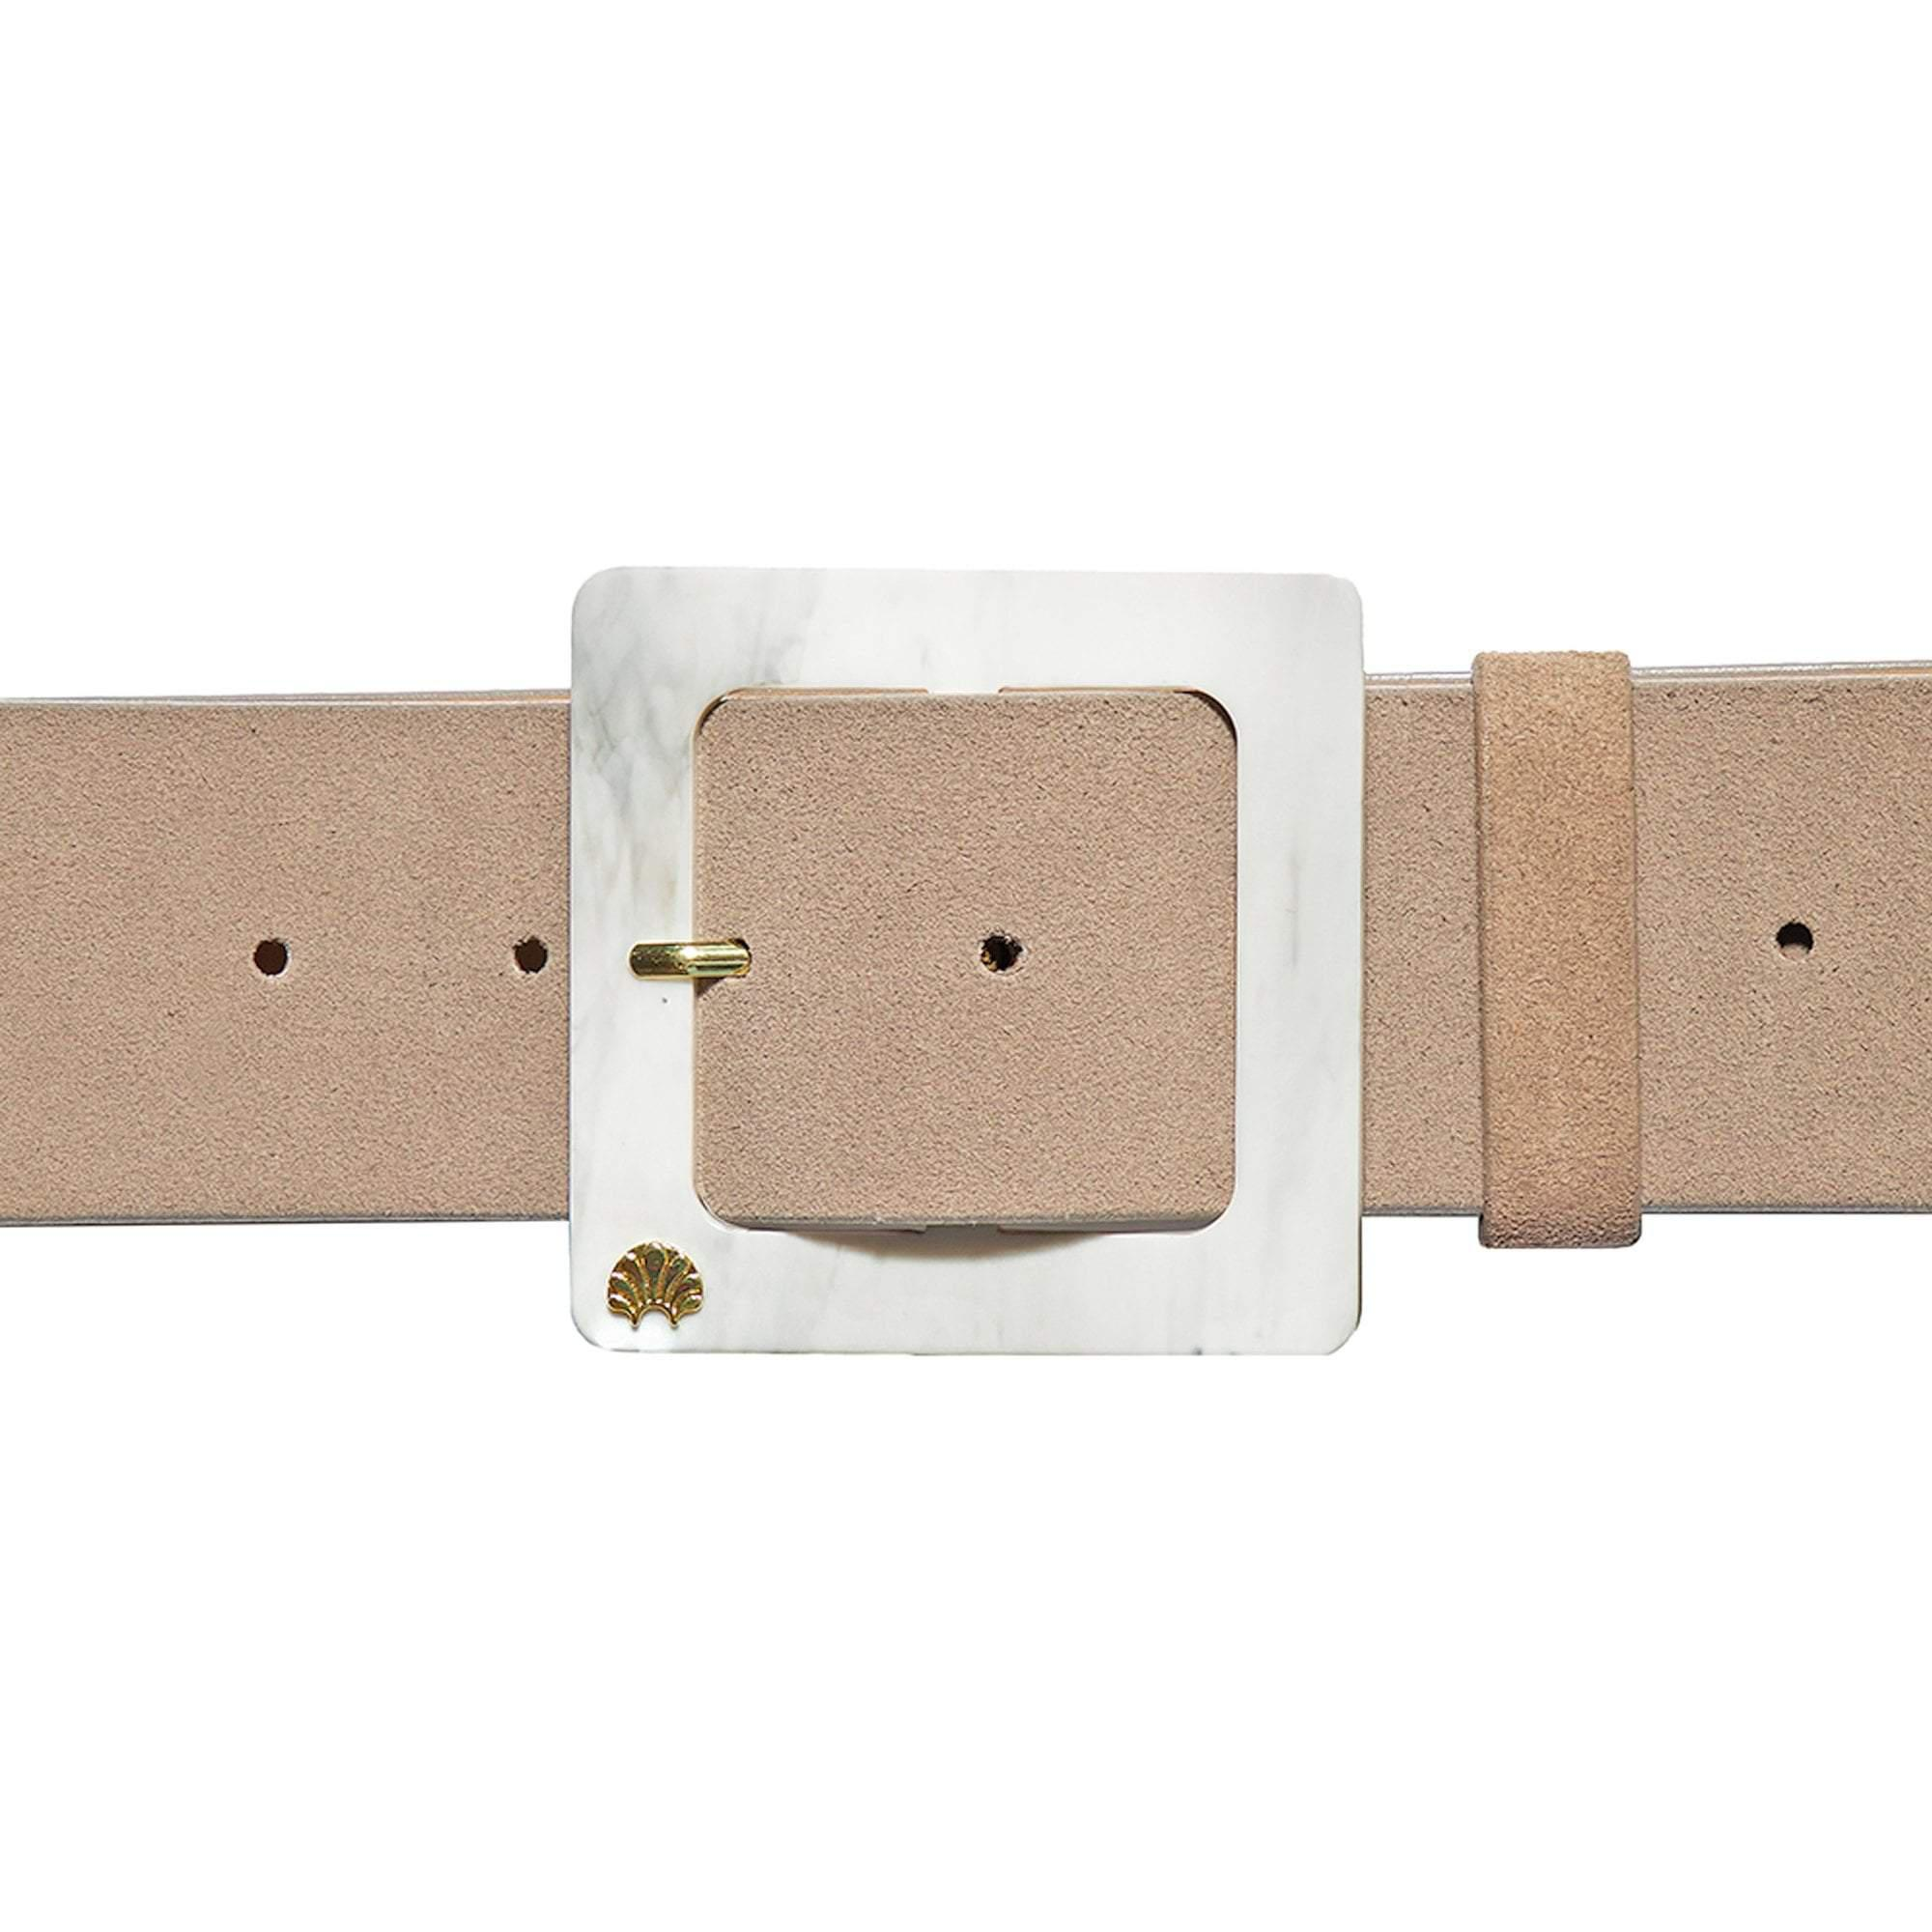 TAN SUEDE AND MARBLED ACETATE BELT